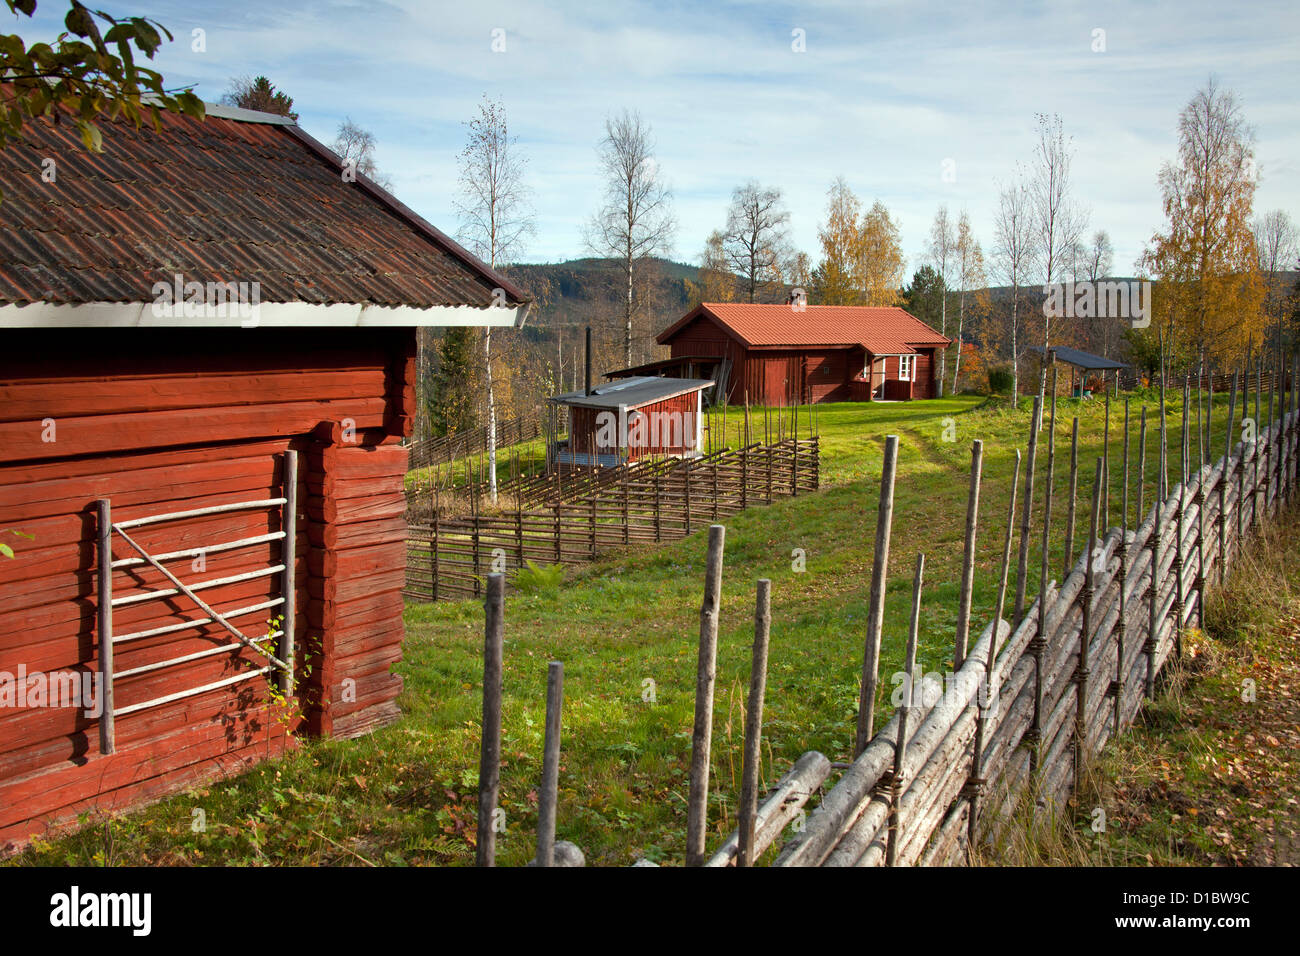 Traditional red wooden farmhouse cottage in autumn, Dalarna, Sweden, Scandinavia - Stock Image